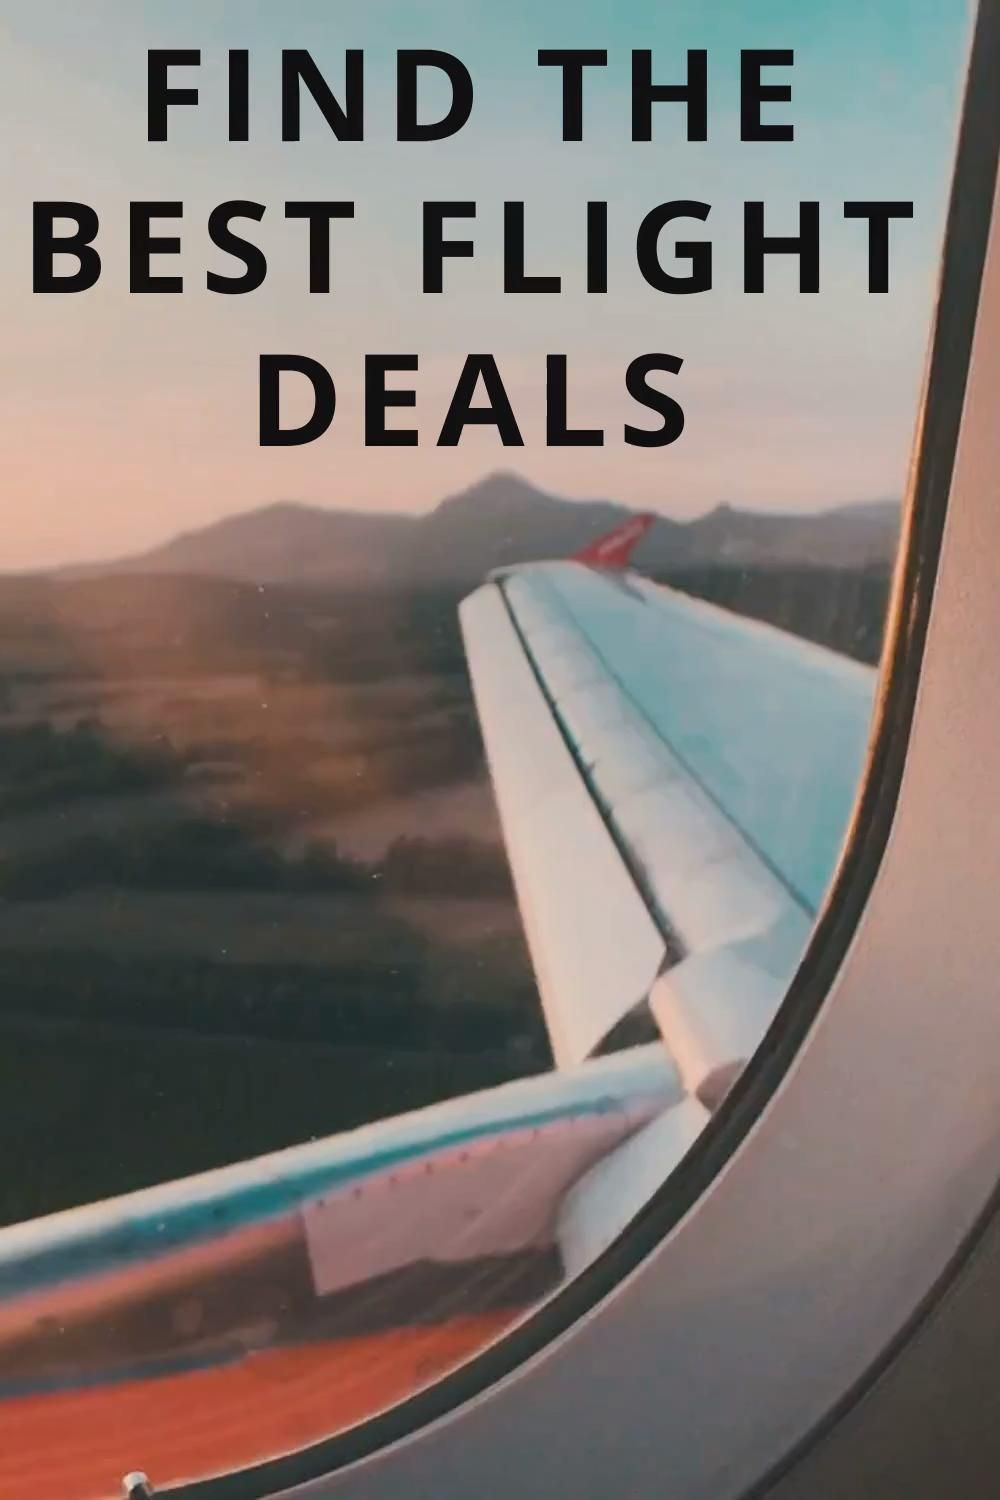 Websites to find you the best airline deals for the perfect trip! #travel #travelblog #blog #blogger #travelblogger #destination #trip #airplane #airline #flight #flightfinder #flightfinders #flightdeals #airlinedeals